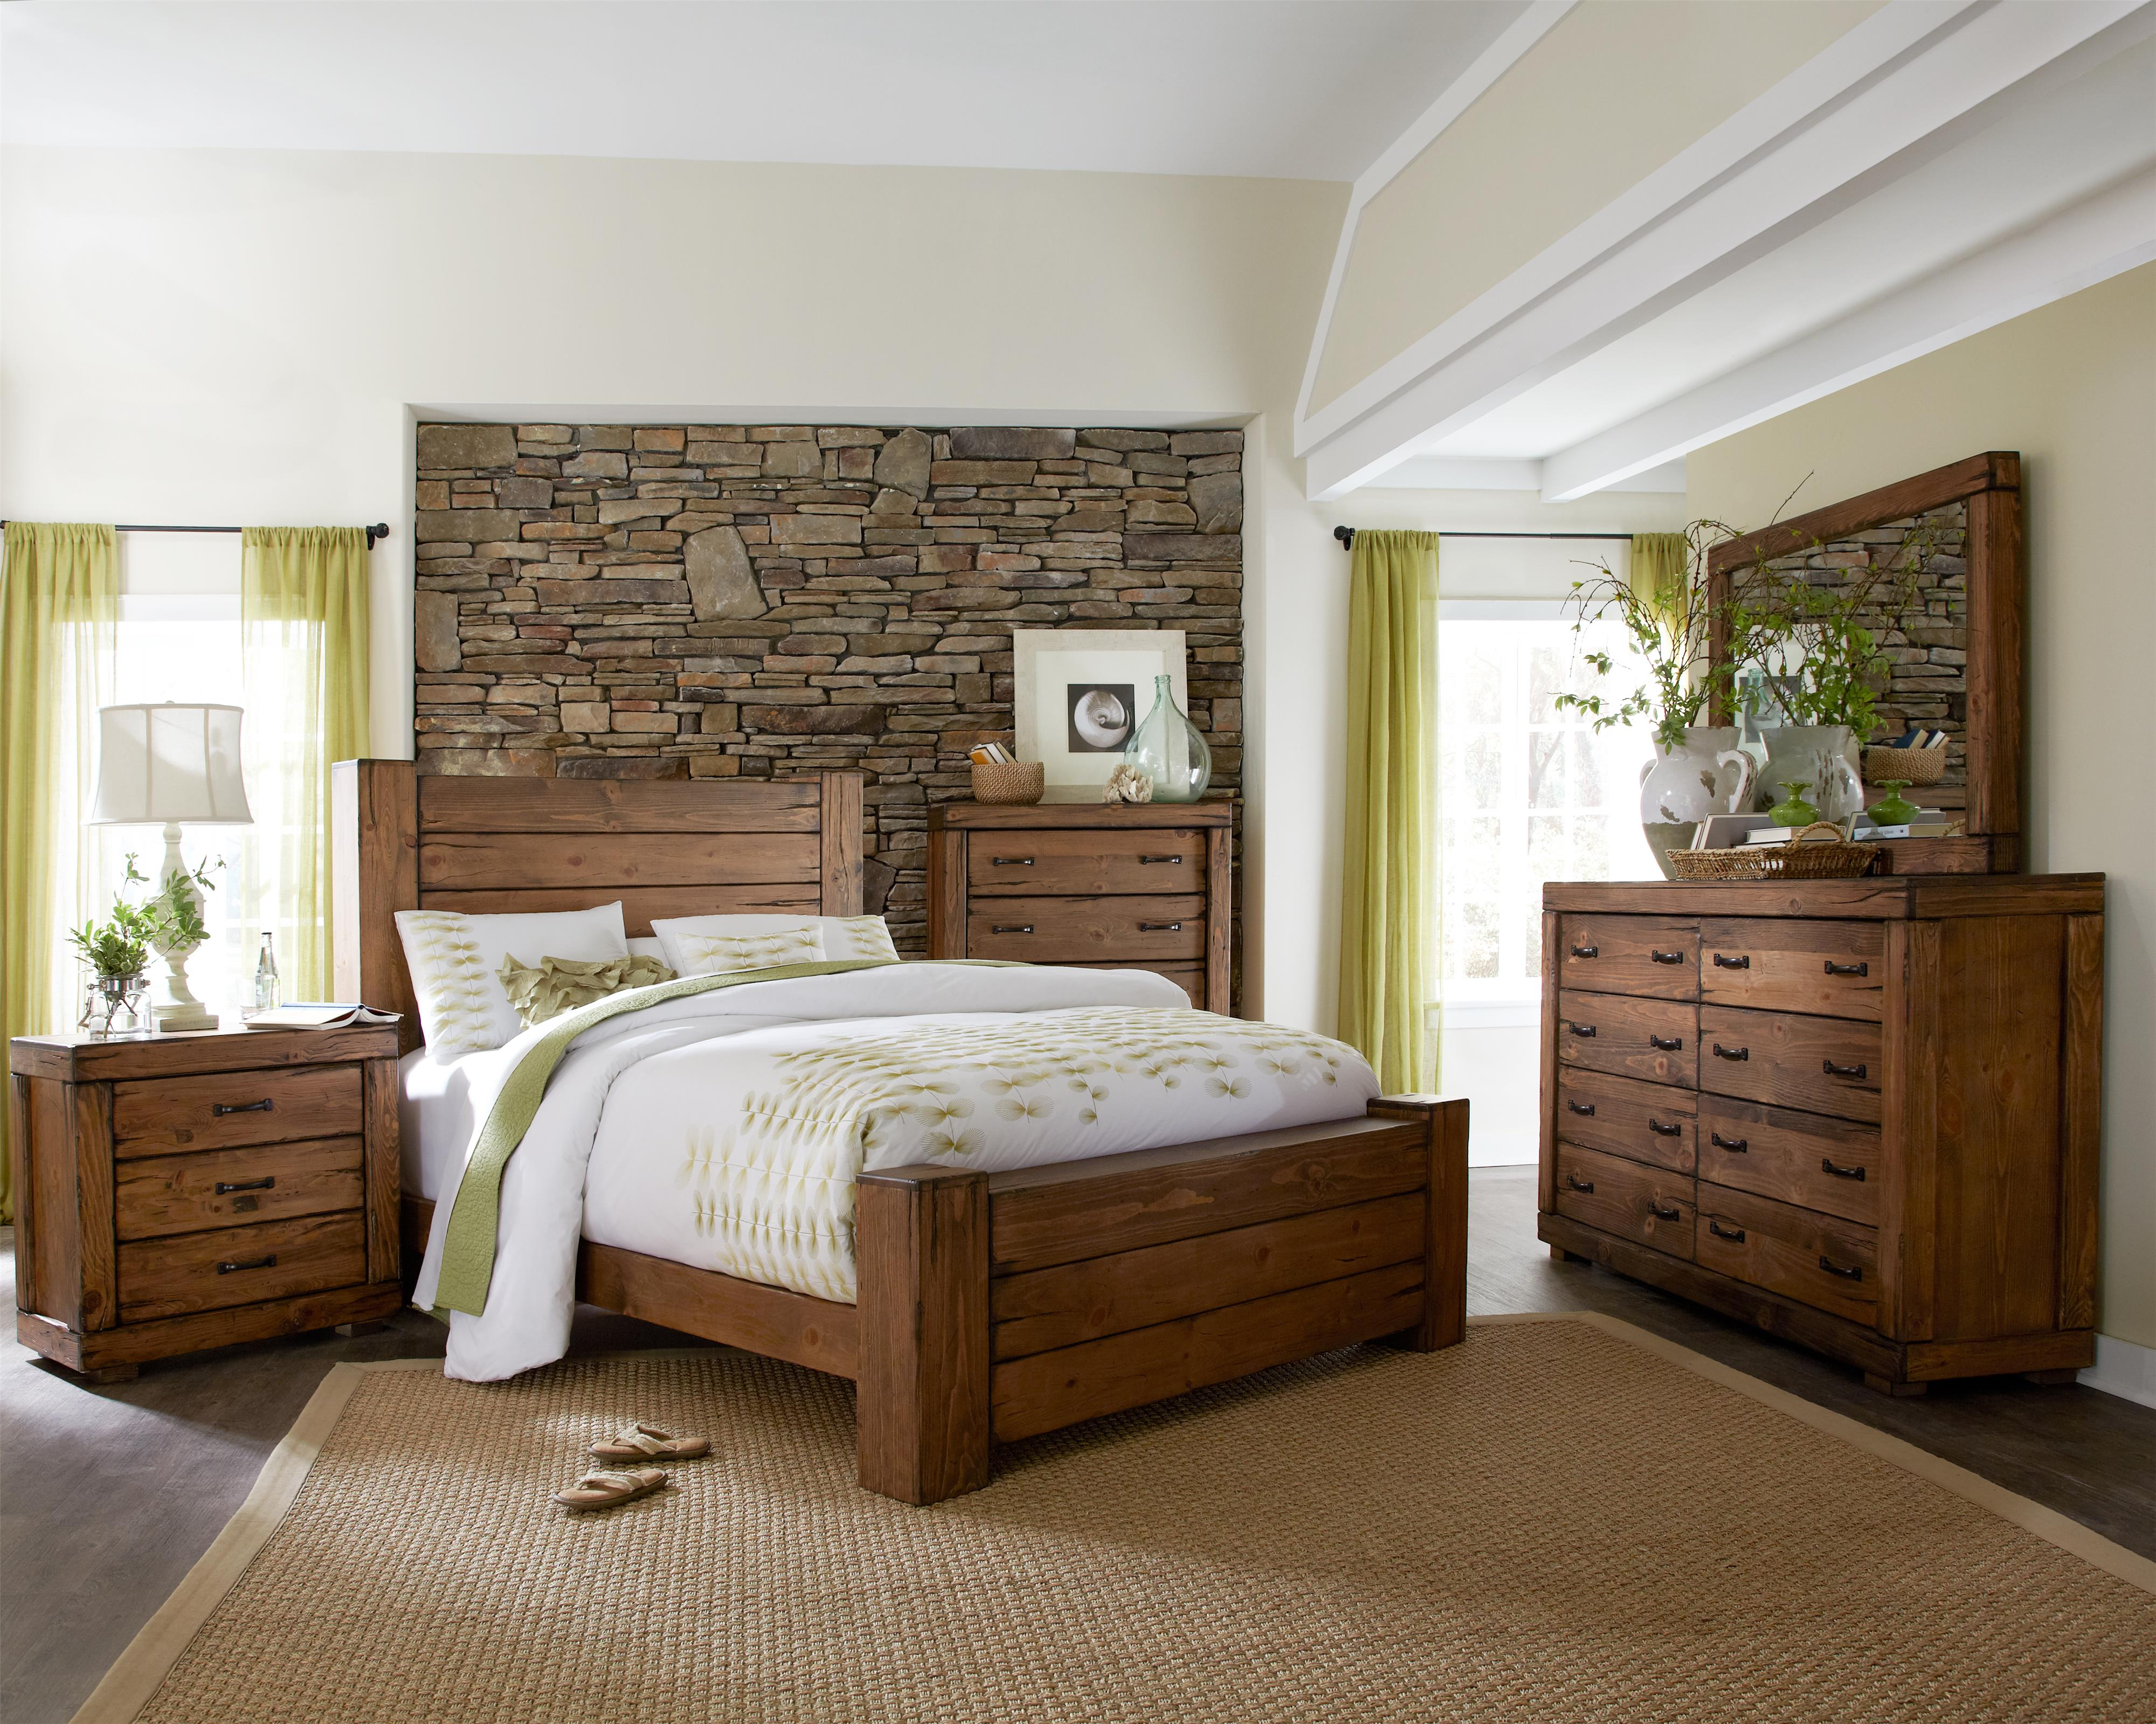 Progressive Furniture Maverick California King Bedroom Group - Item Number: P626 CK Bedroom Group 1